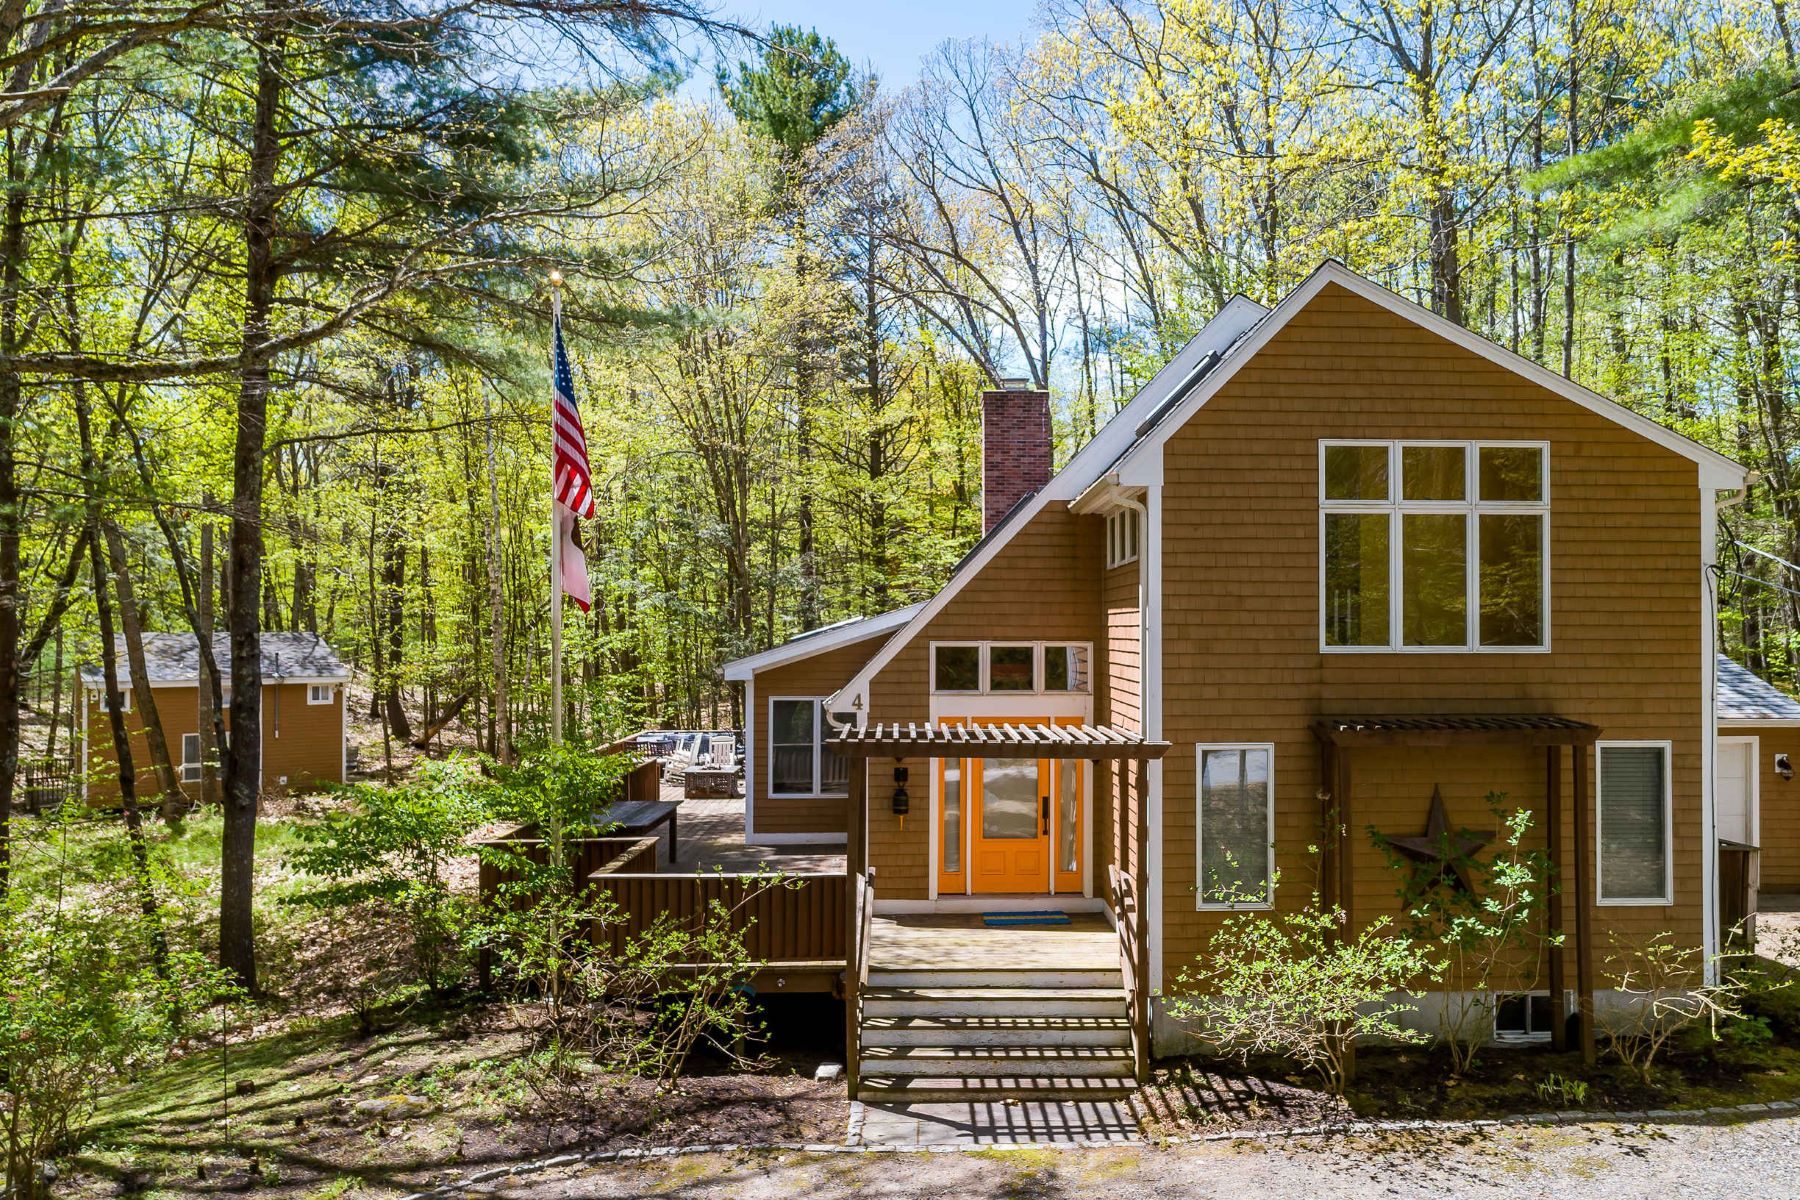 Single Family Homes for Sale at Private Cape Minutes from Beaches & Shops 4 Limestone Road Ogunquit, Maine 03907 United States